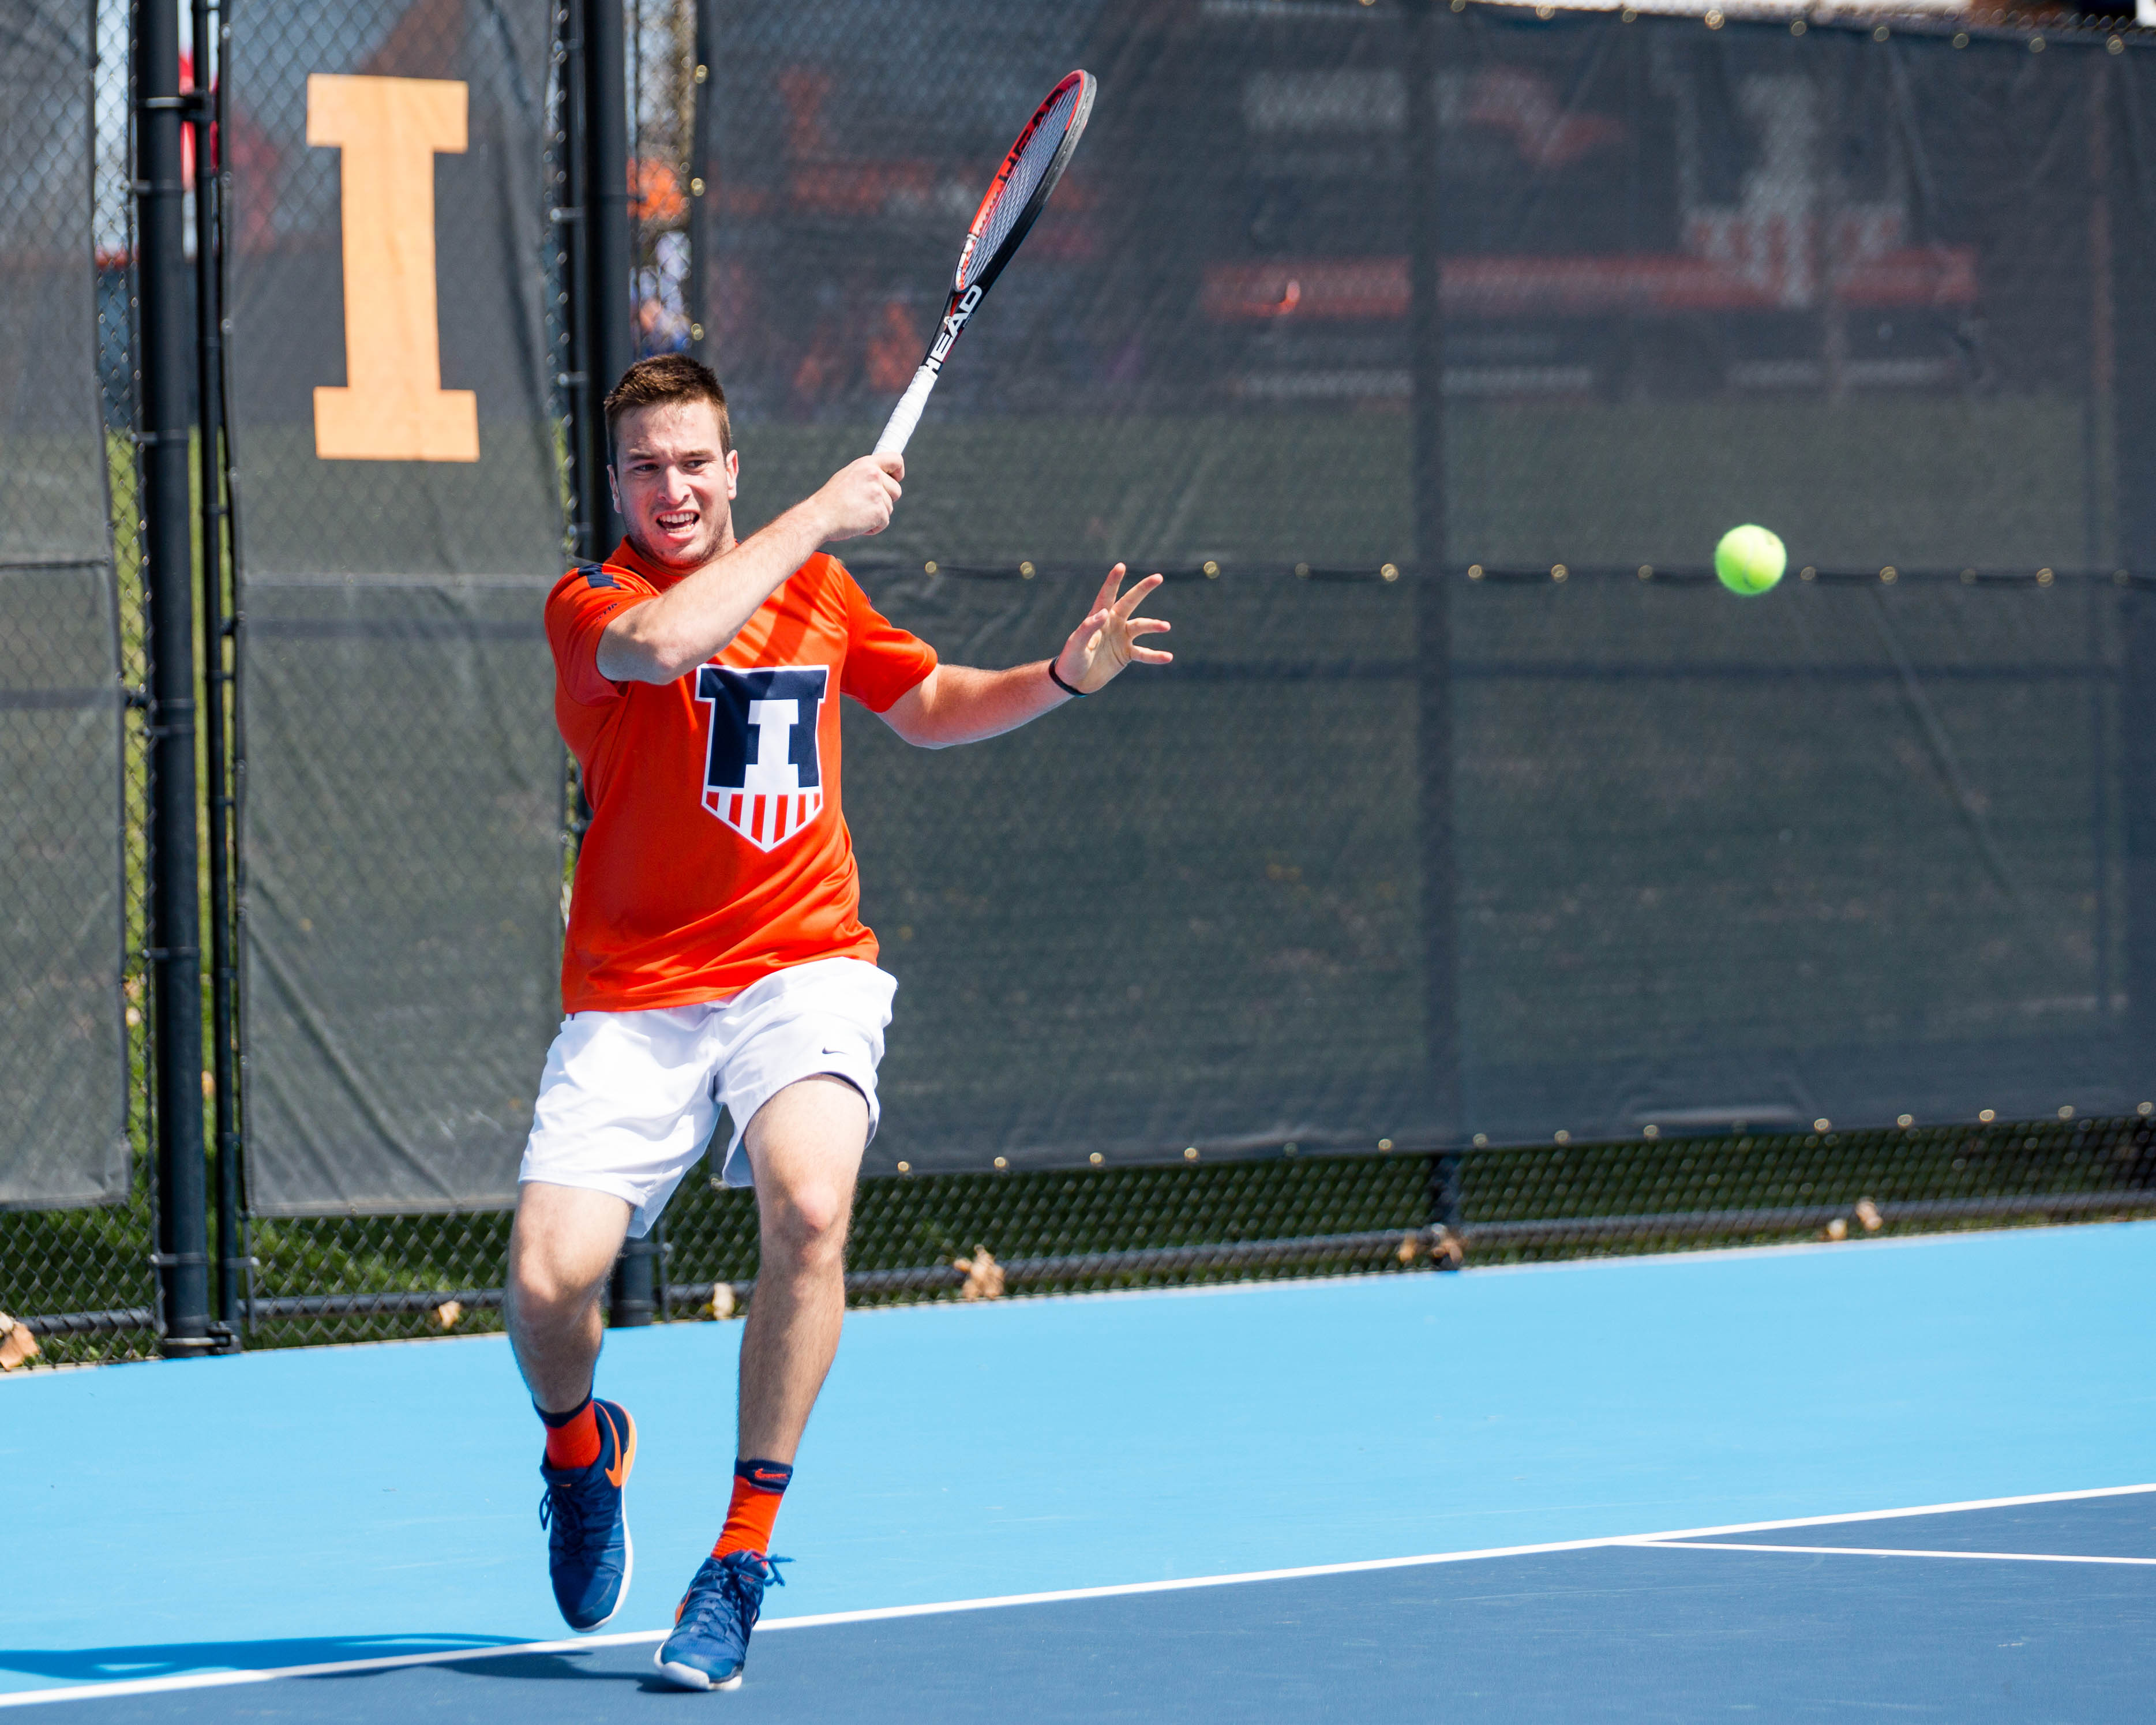 Illinois' Vuk Budic returns the ball during the match against Iowa at Atkins Tennis Center on Saturday, April 8.